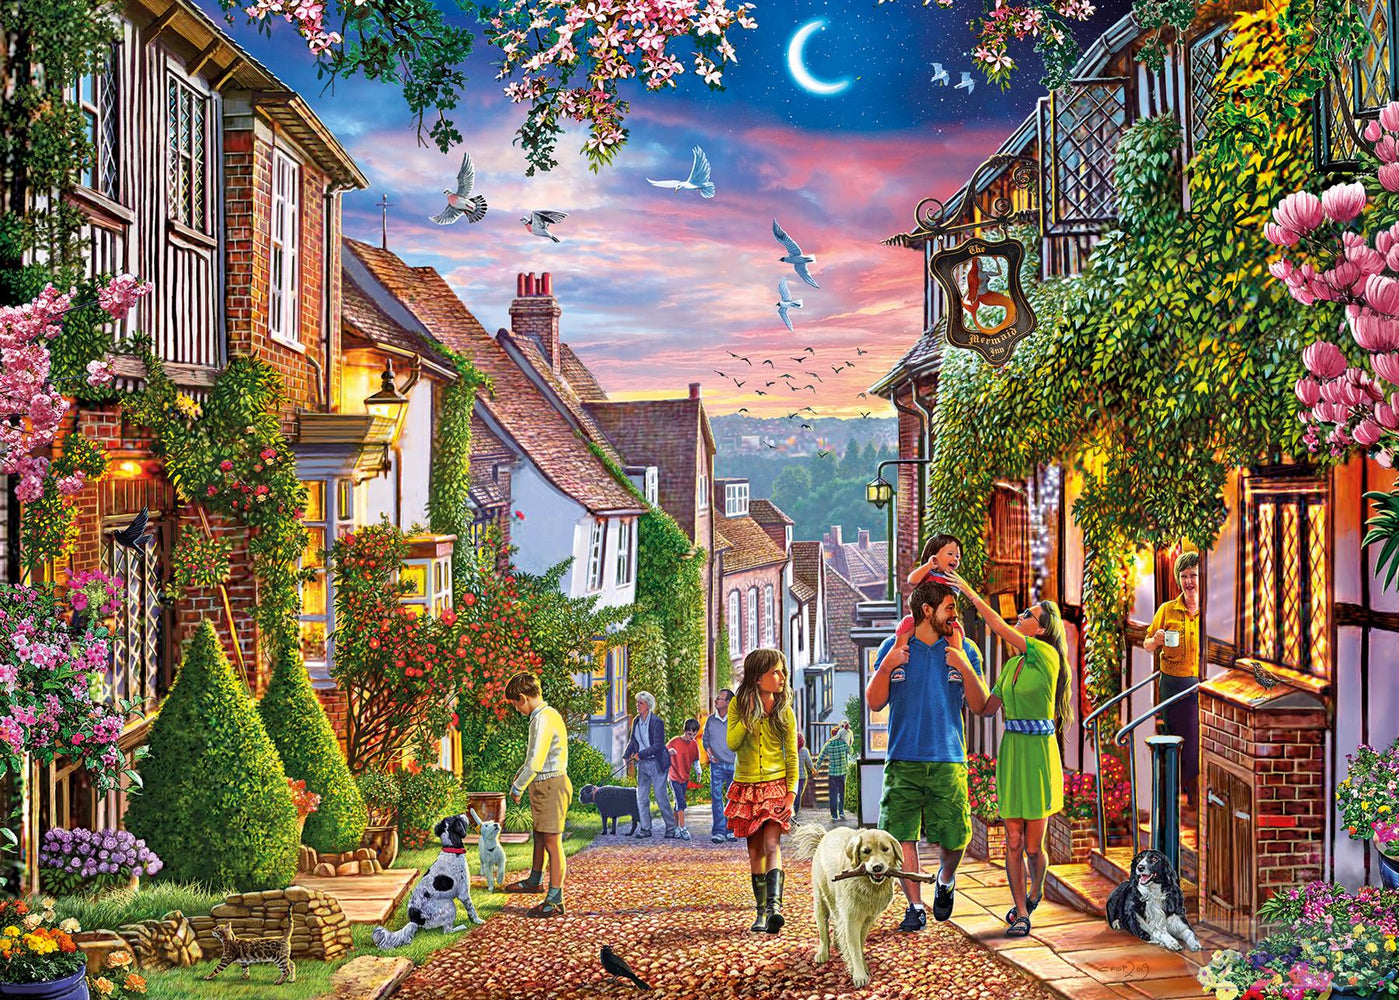 Mermaid Street Rye 500XL Piece Jigsaw Puzzle